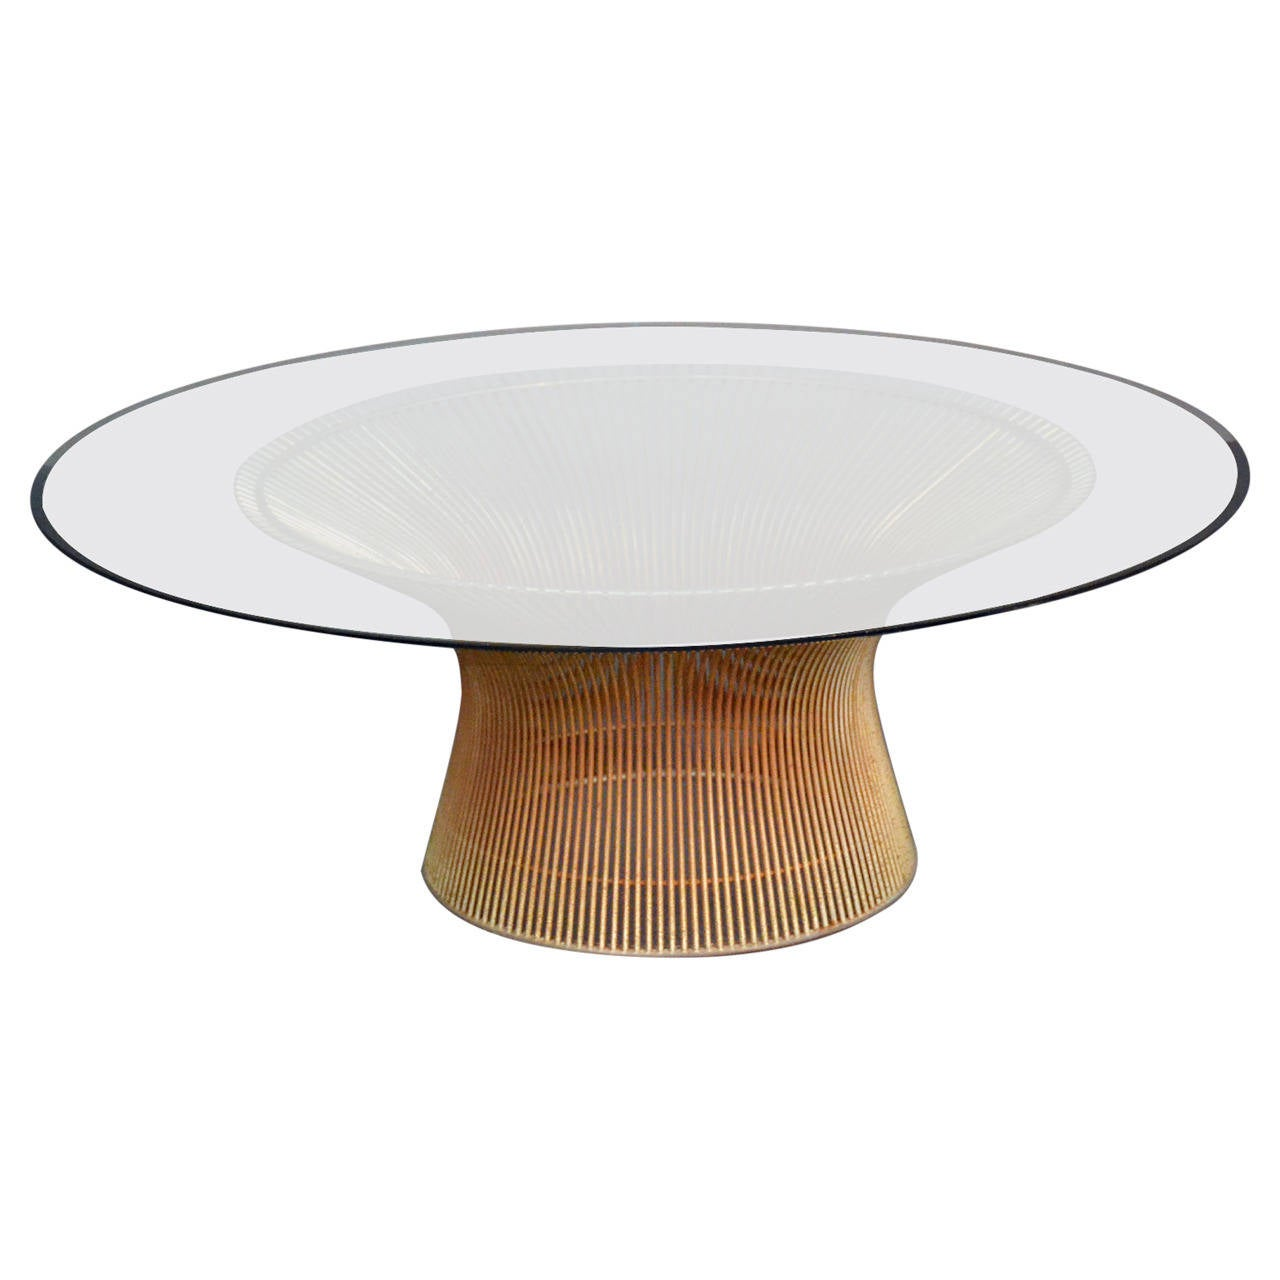 Warren Platner Coffee Table With Glass Top At 1stdibs